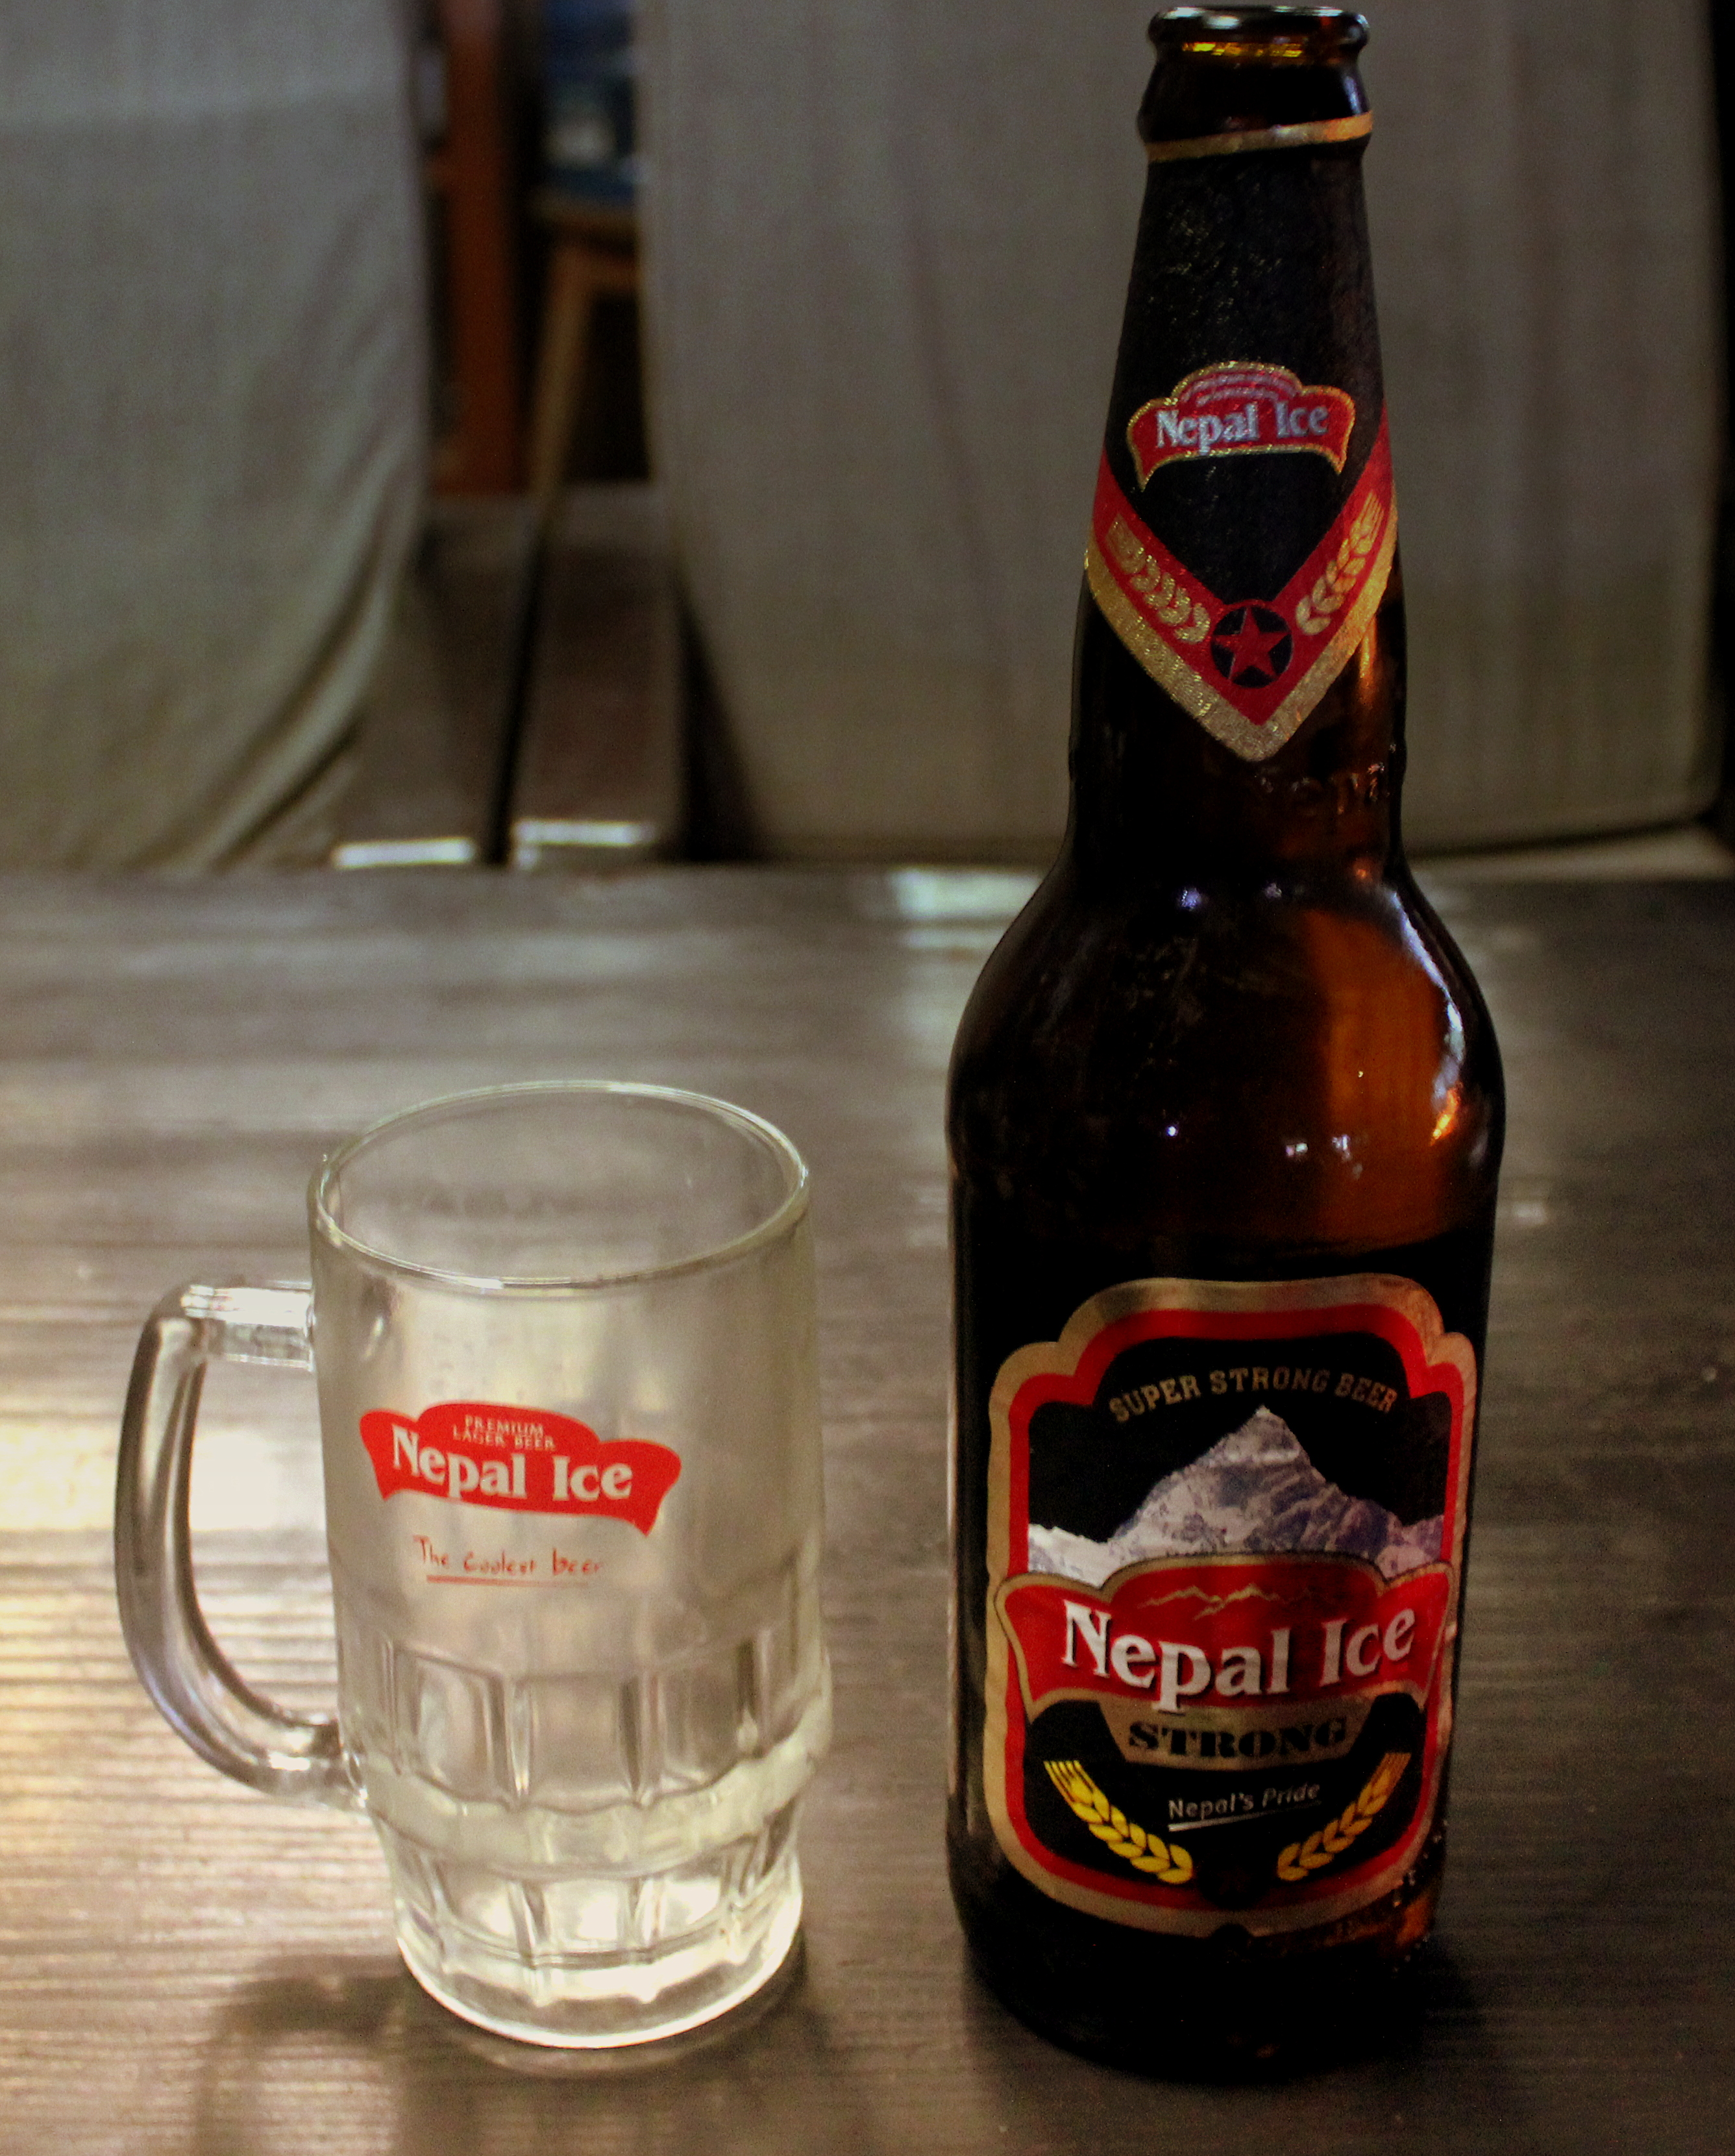 Strong Beer Brands File:nepal Ice Strong Beer